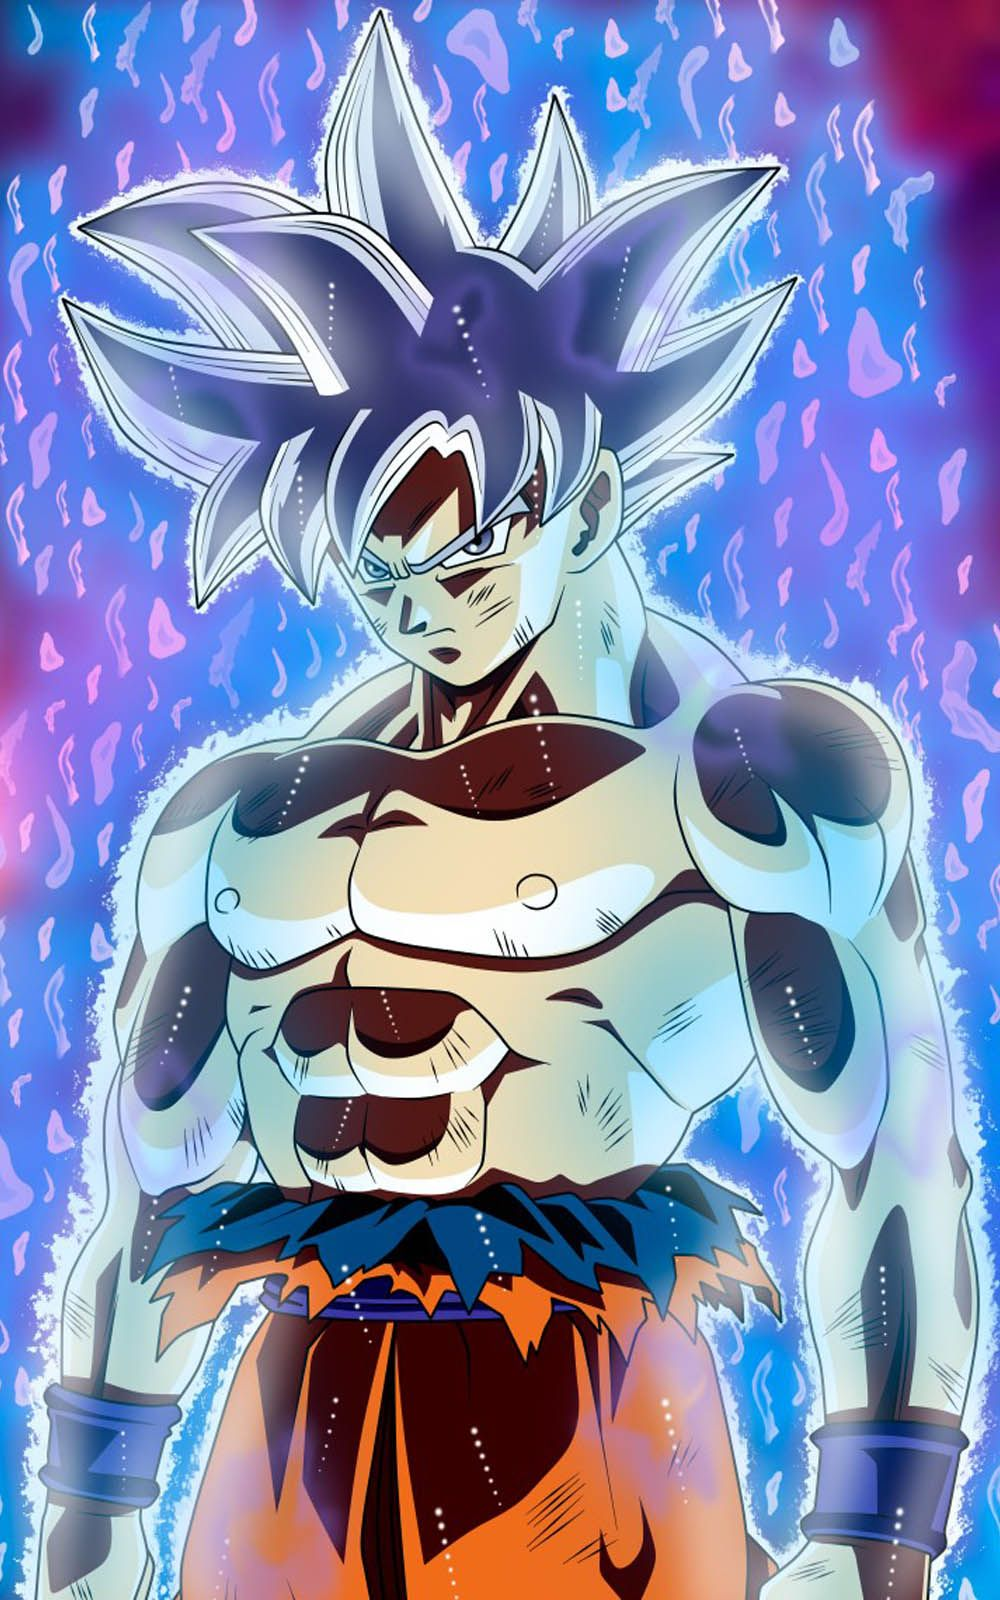 Ultra Instinct Goku Dragon Ball Super 4k Ultra Hd Mobile Wallpaper Dragon Ball Super Goku Anime Dragon Ball Super Dragon Ball Super Manga